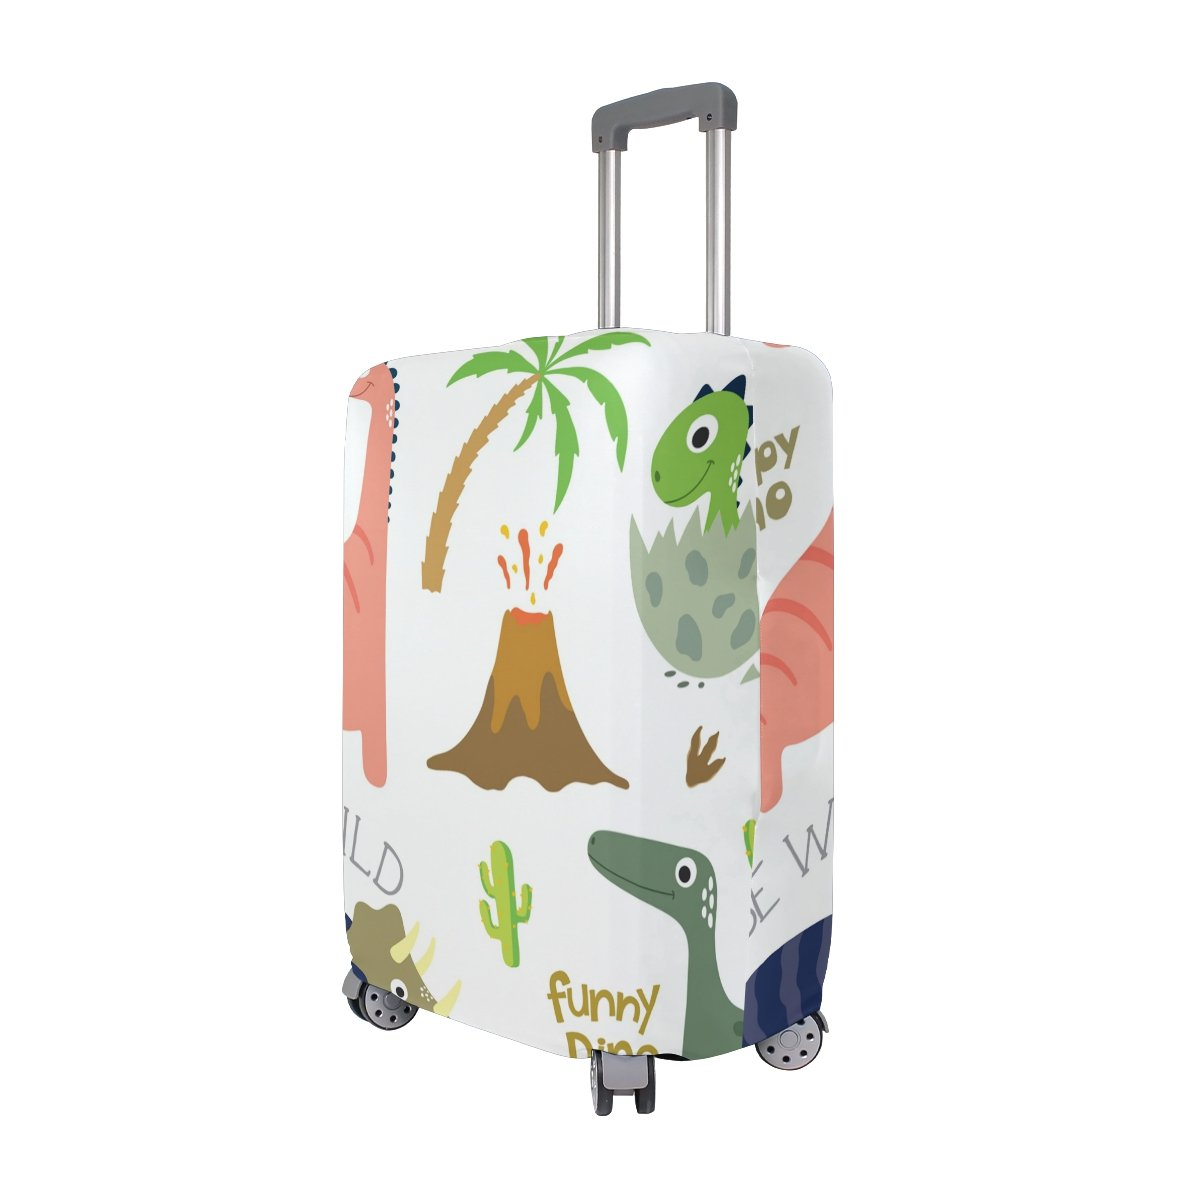 OREZI Luggage Protector Green Dinosaurs Travel Luggage Elastic Cover Suitcase Washable and Durable Anti-Scratch Stretchy Case Cover Fits 18-32 Inches